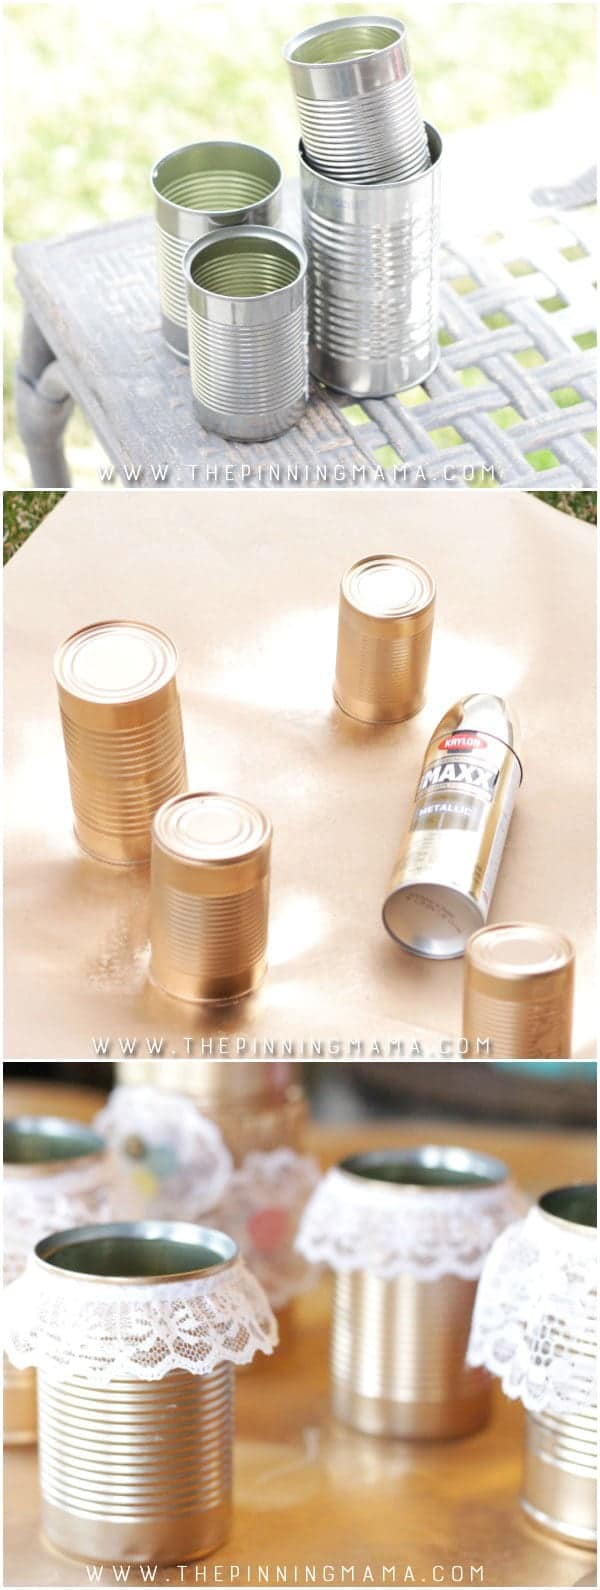 Spray paint tin cans gold and glue lace on them for a stunning centerpiece for a wedding, baby or bridal shower or a banquet!  Such an easy and inexpensive way to decorate